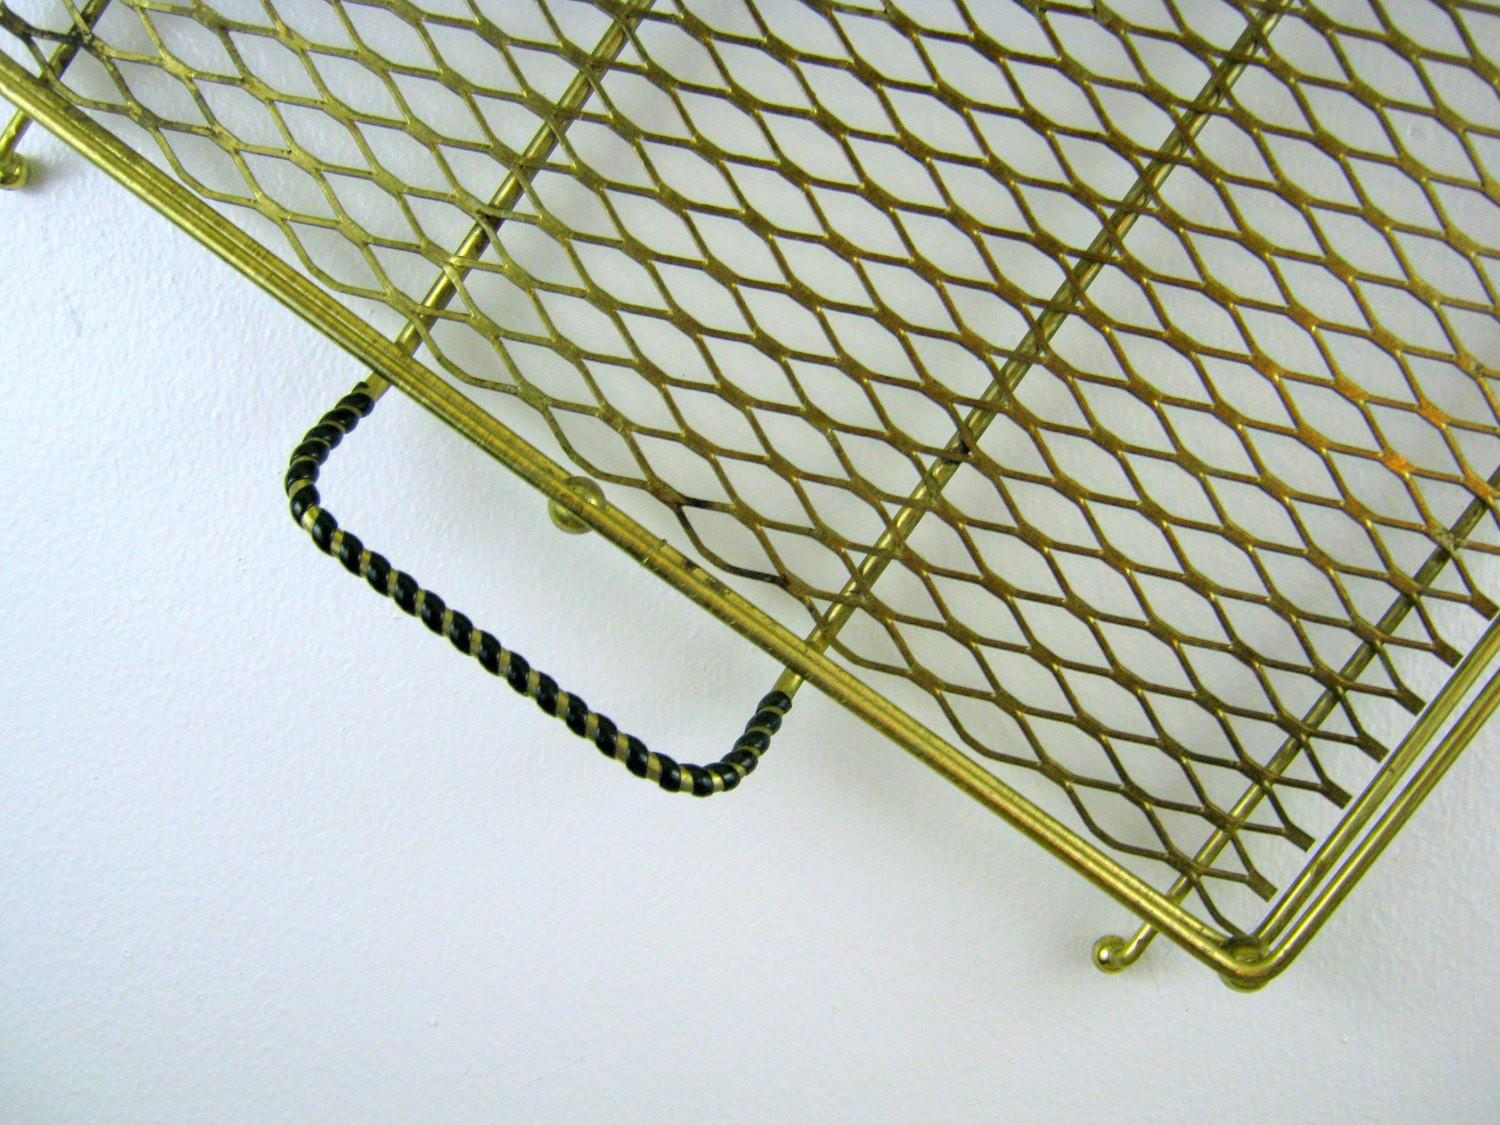 Atomic Age Perforated Metal Tray